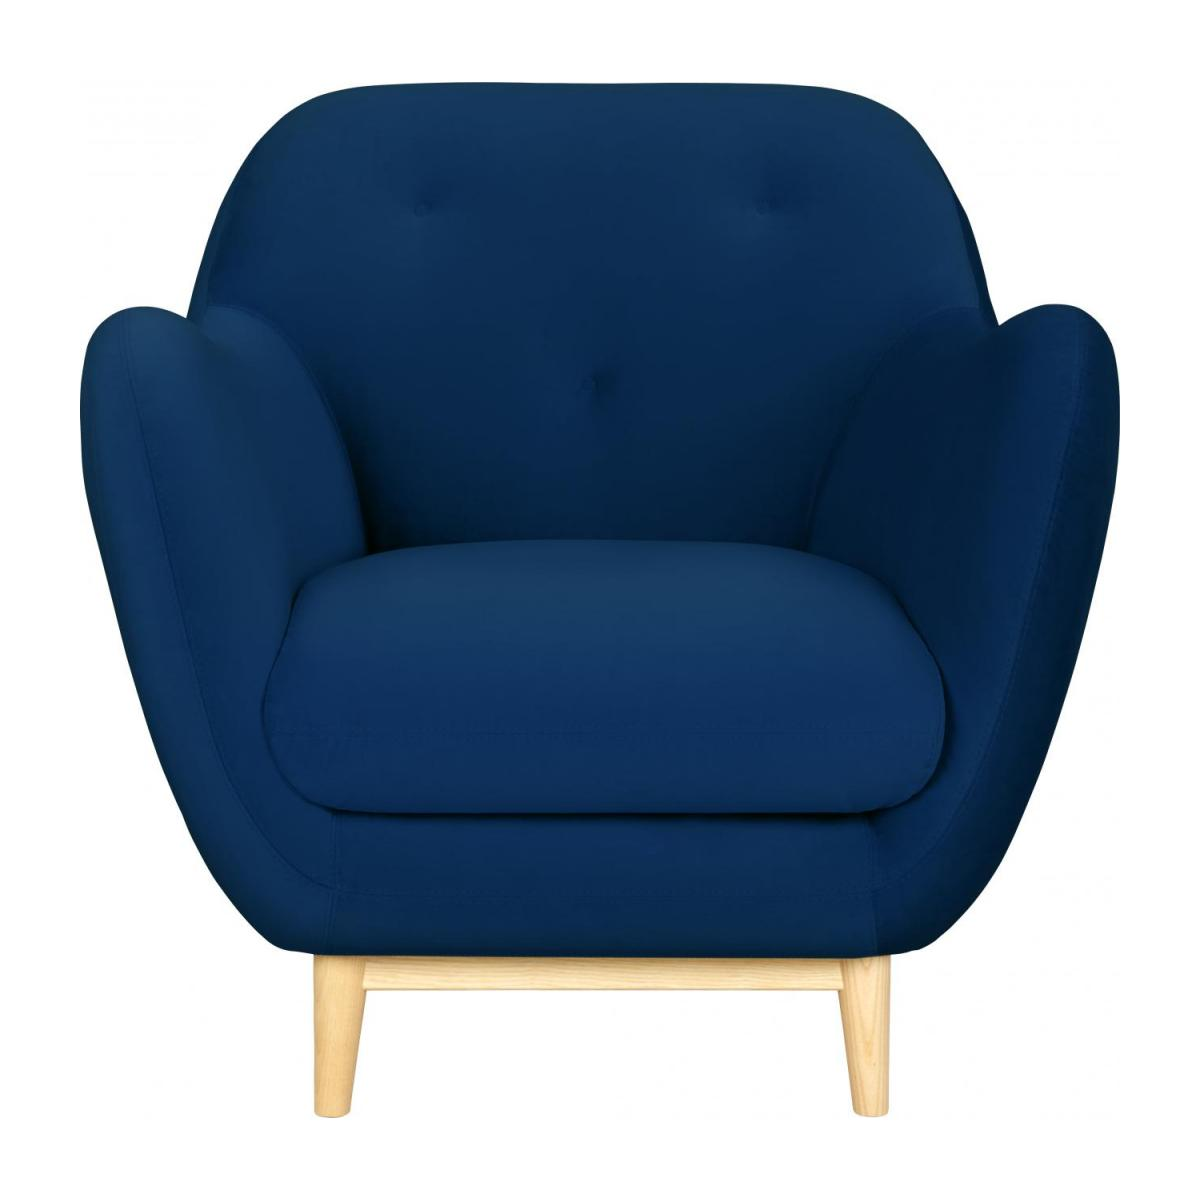 Armchair made of velvet, blue n°2